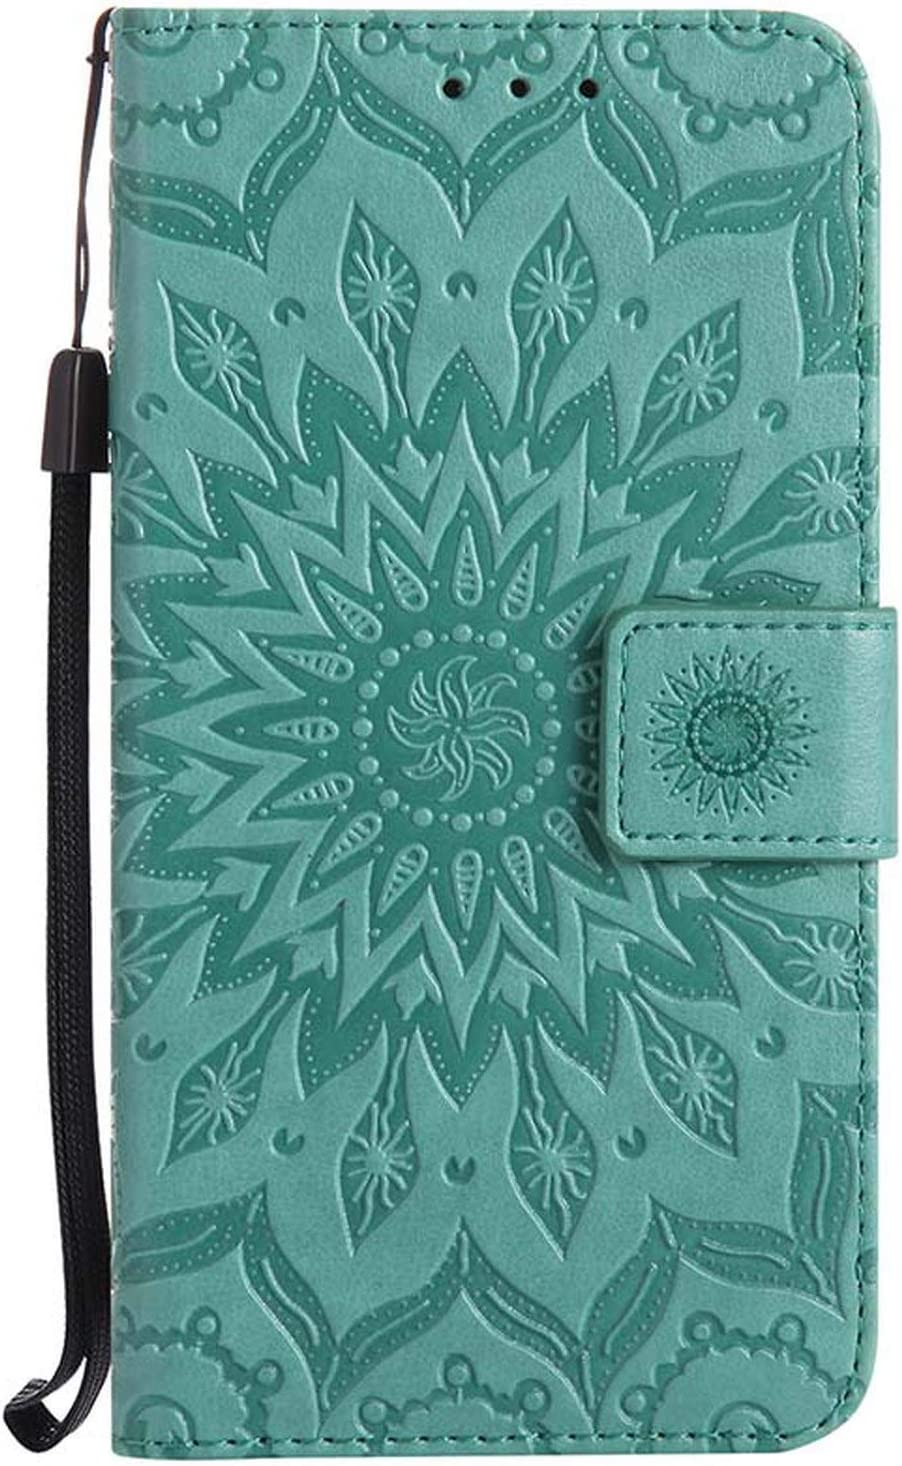 Colorful Painted Shell Case for LG G3 Beat G3s G4 Mini G4c G5 V10 V20 V30 V40 Stylus 2 LS775 3 LS777 Stylo 4 Leather Cases B128,Green,for LG G5 H820